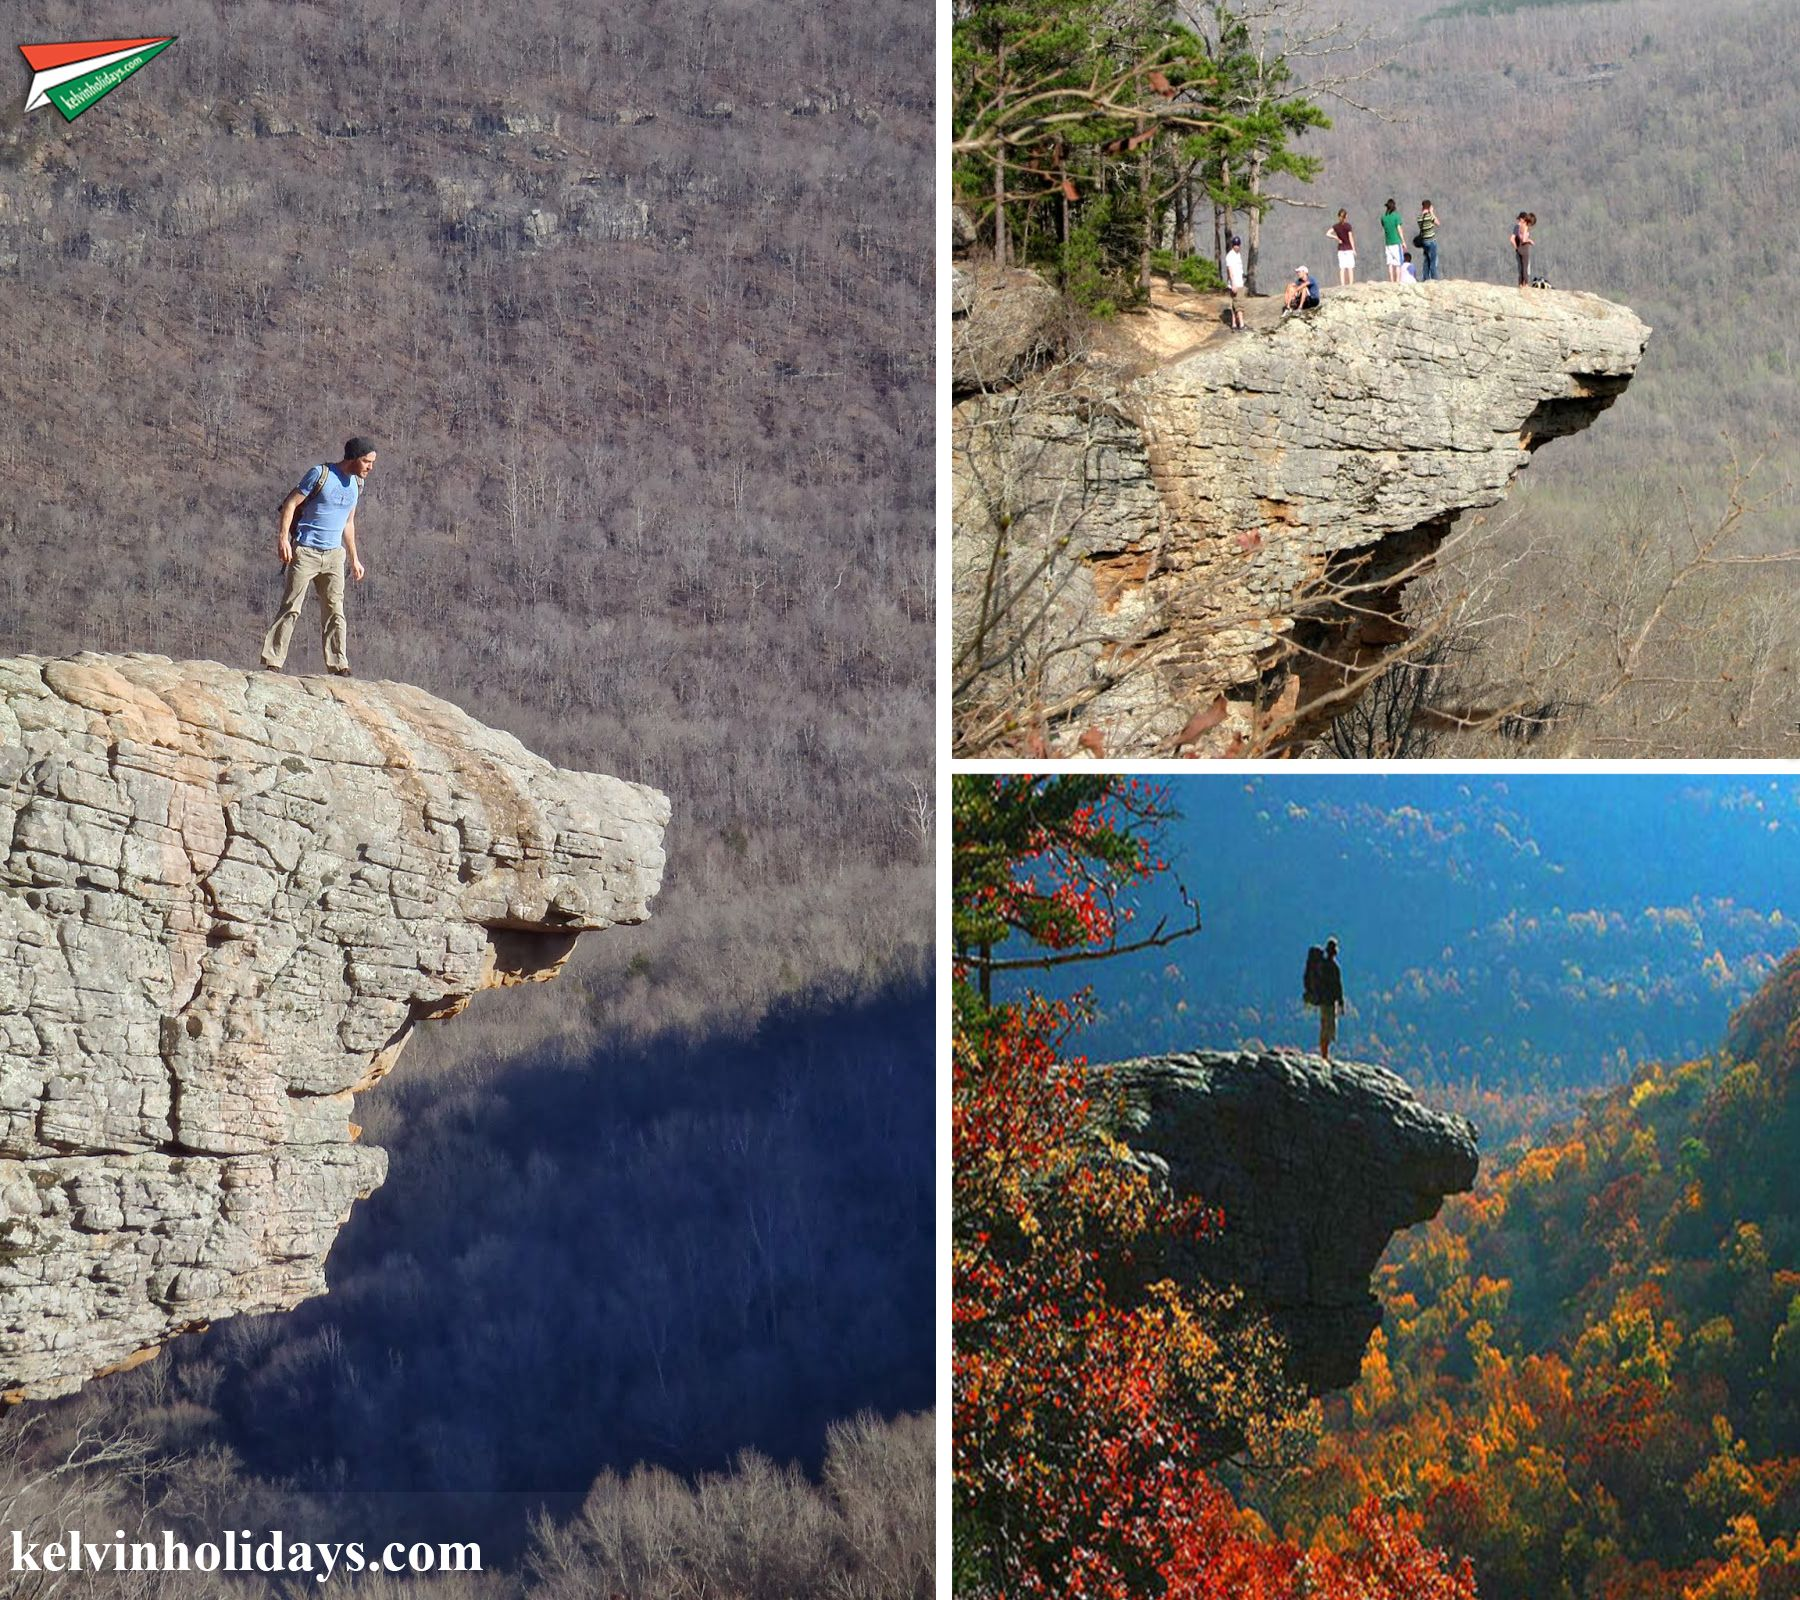 #HawksbillCrag Hawksbill Crag Trail or Whittaker Point Is located in the Ozark Forest – Upper Buffalo Wilderness, South-west of Newton County, Arkansas, USA. Hawksbill Crag Trail is a very popular hiking destination and some say it's Arkansas's most photographed rock.